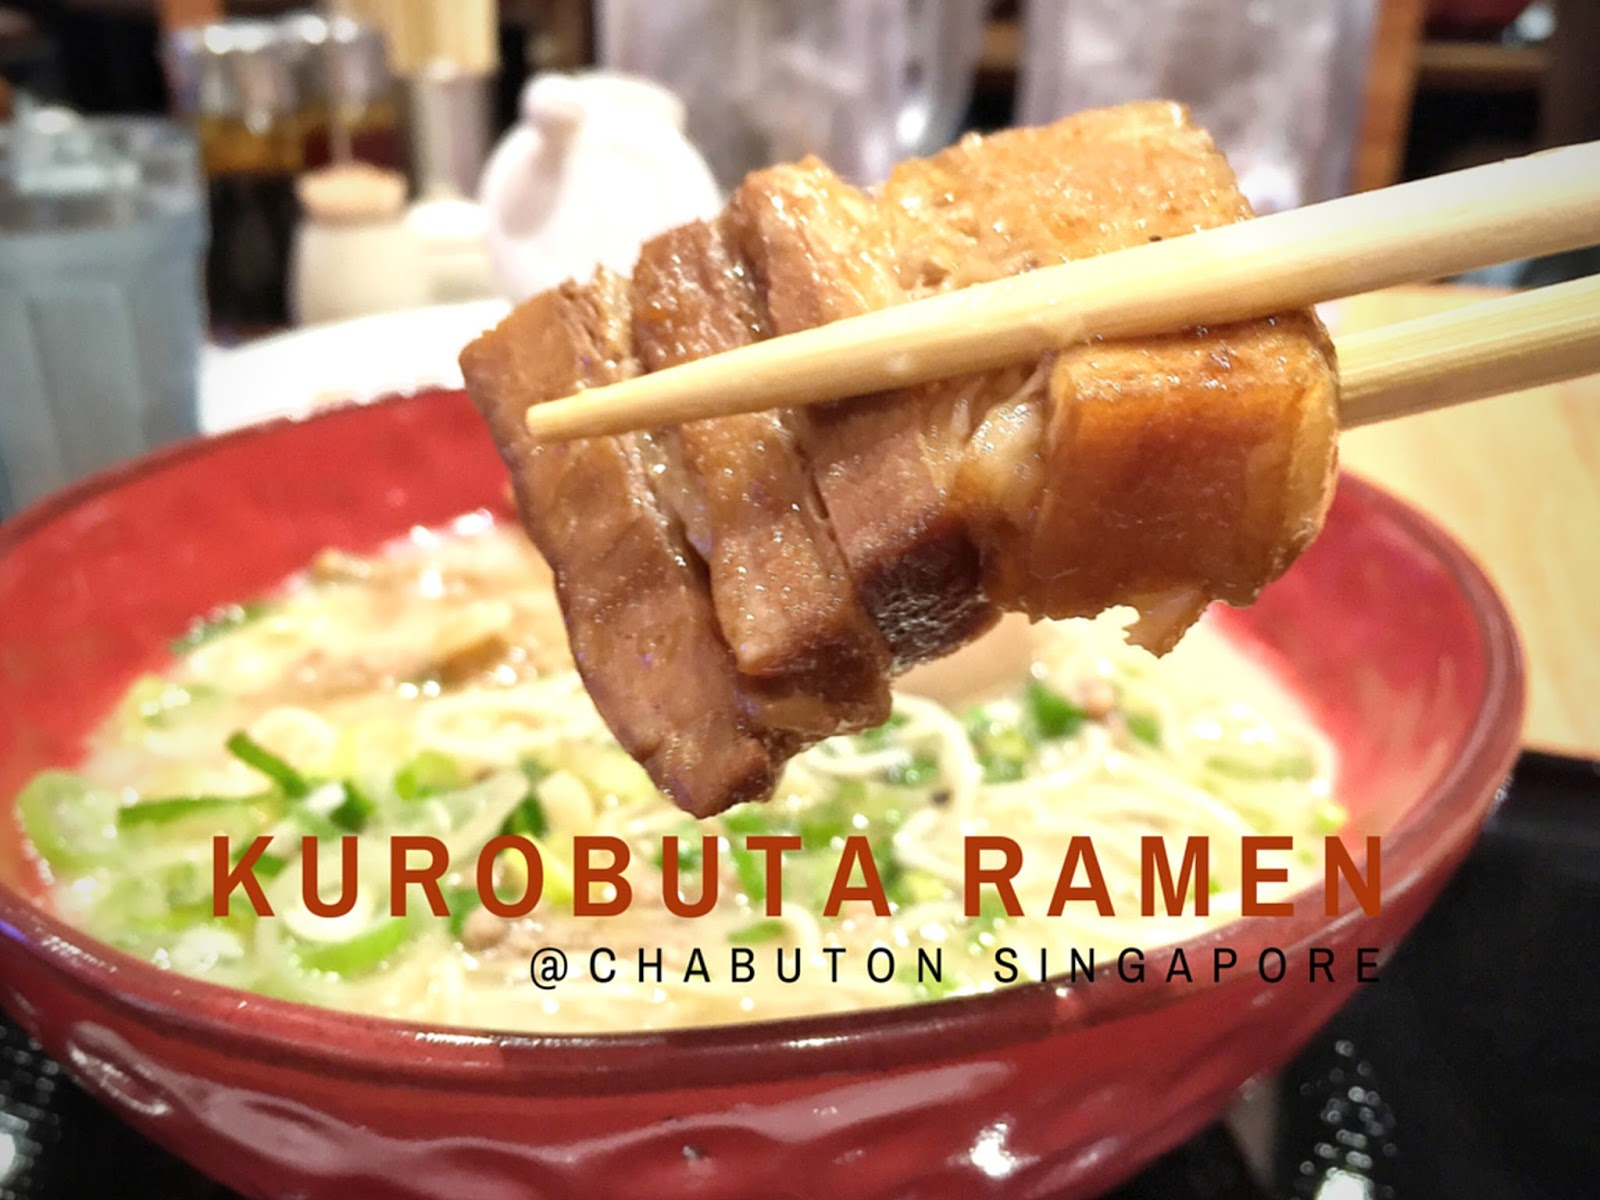 Kurobuta Ramen at Chabuton Singapore